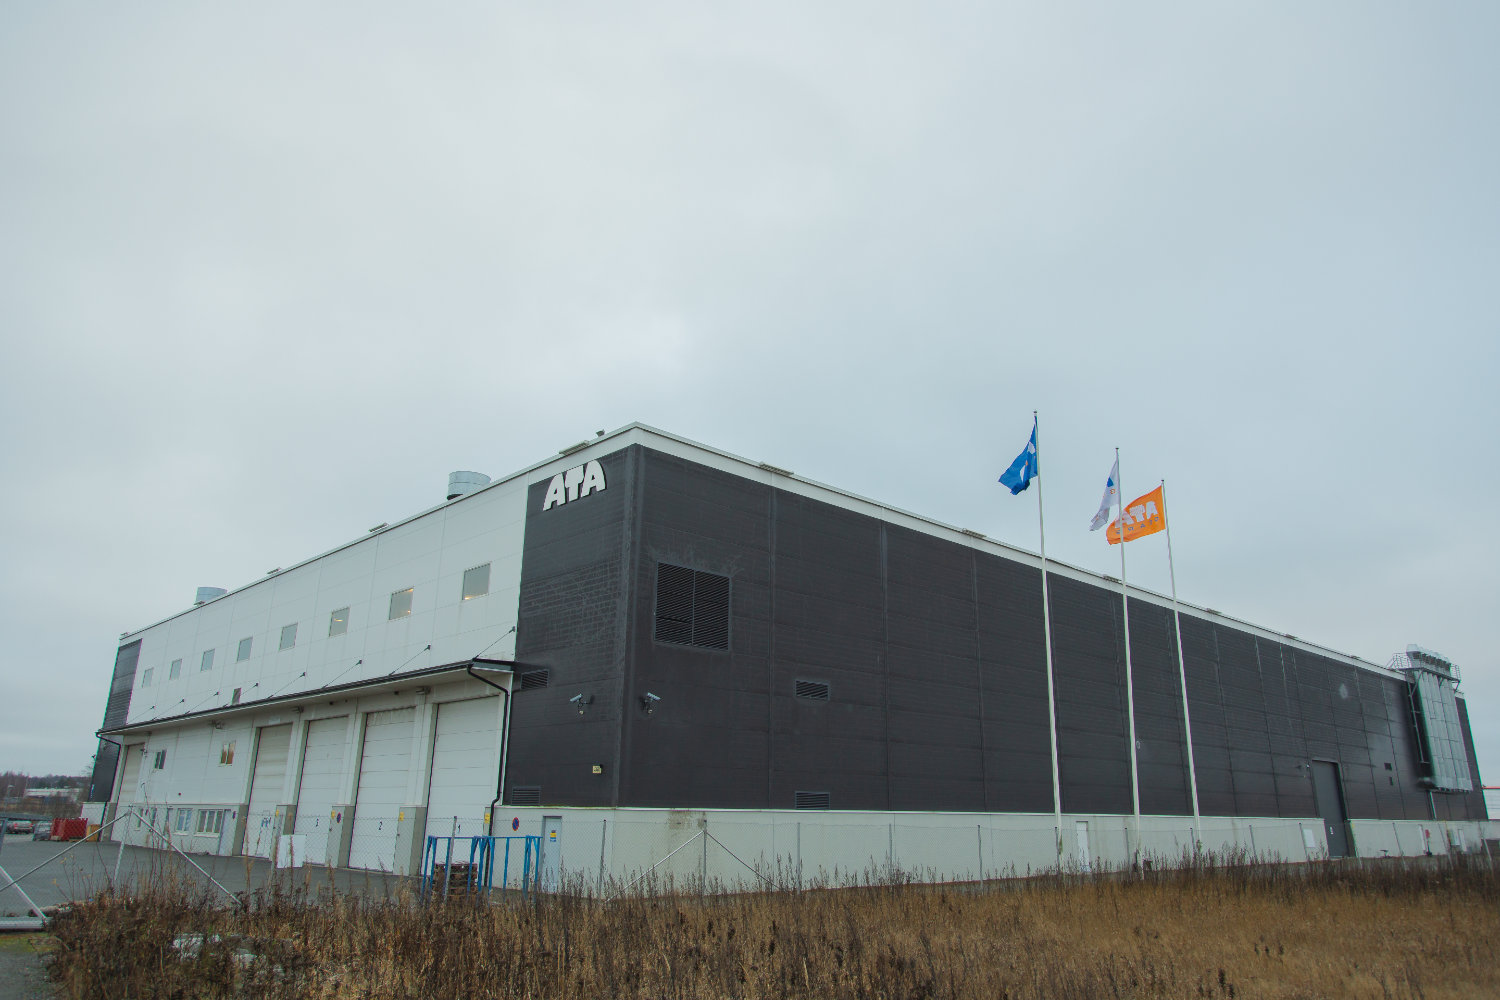 ATA Gears, Tampere